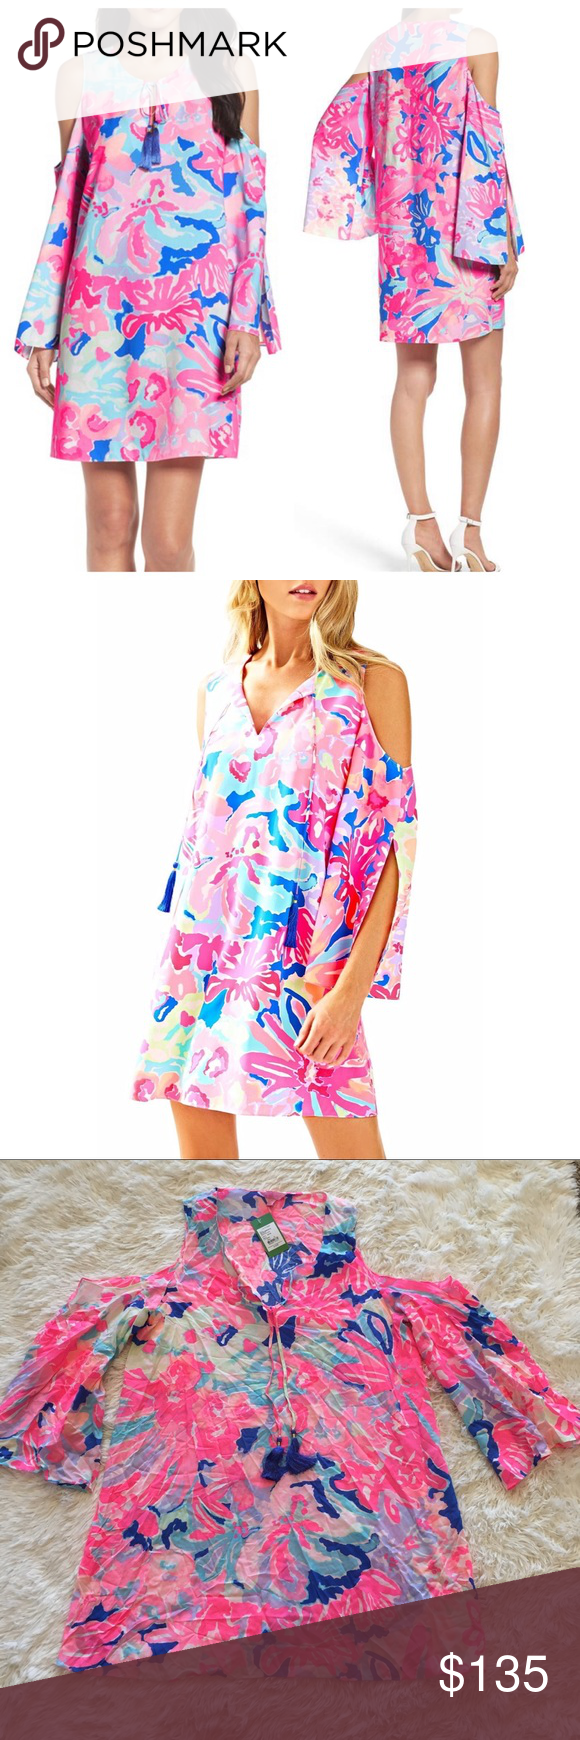 bf6aaf9b212 Lilly Pulitzer Benicia Pink Cold Shoulder Dress NWT Lilly Pulitzer Benicia  tunic cold shoulder dress in